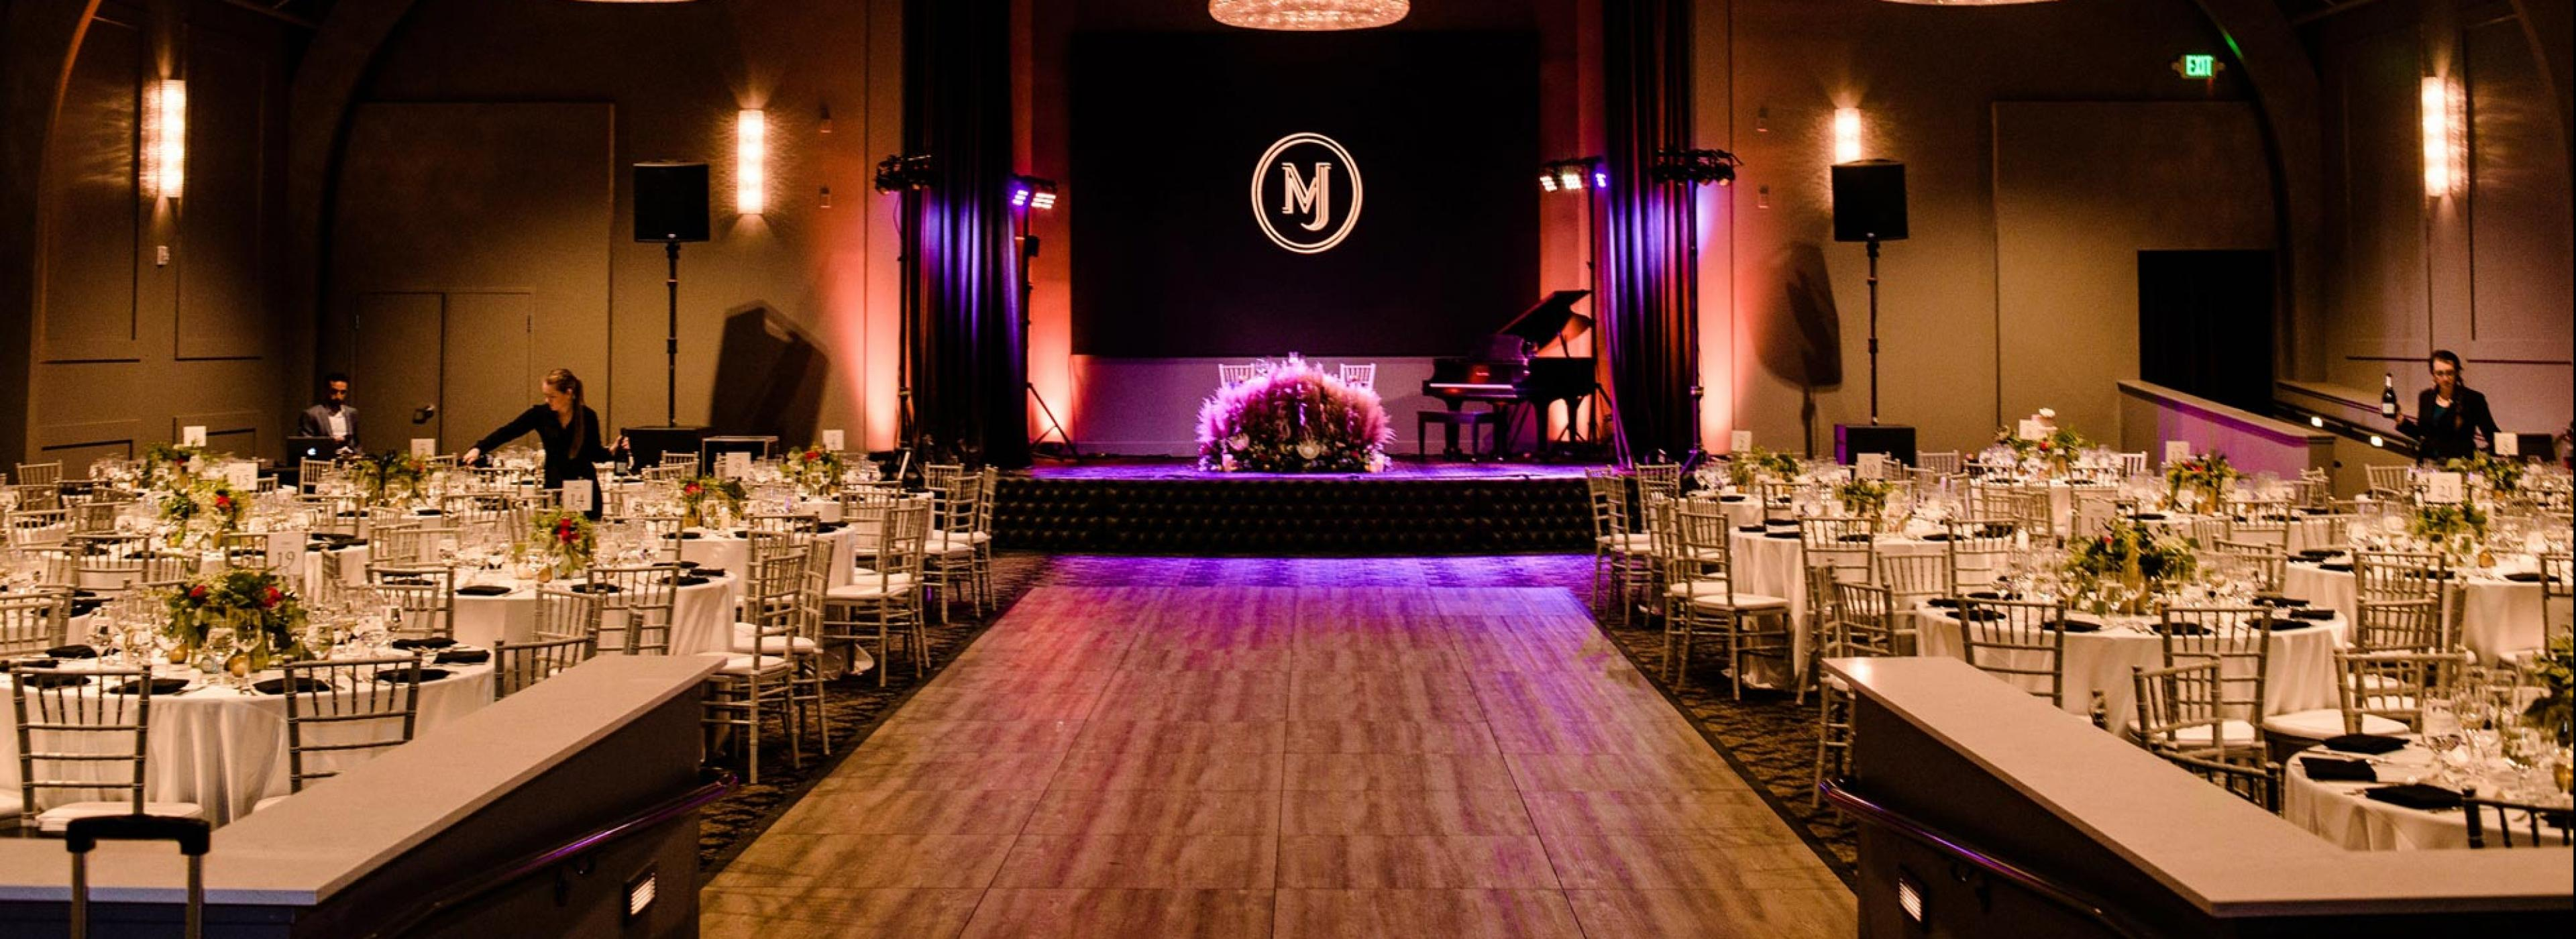 Granada Ballroom Wedding Venue